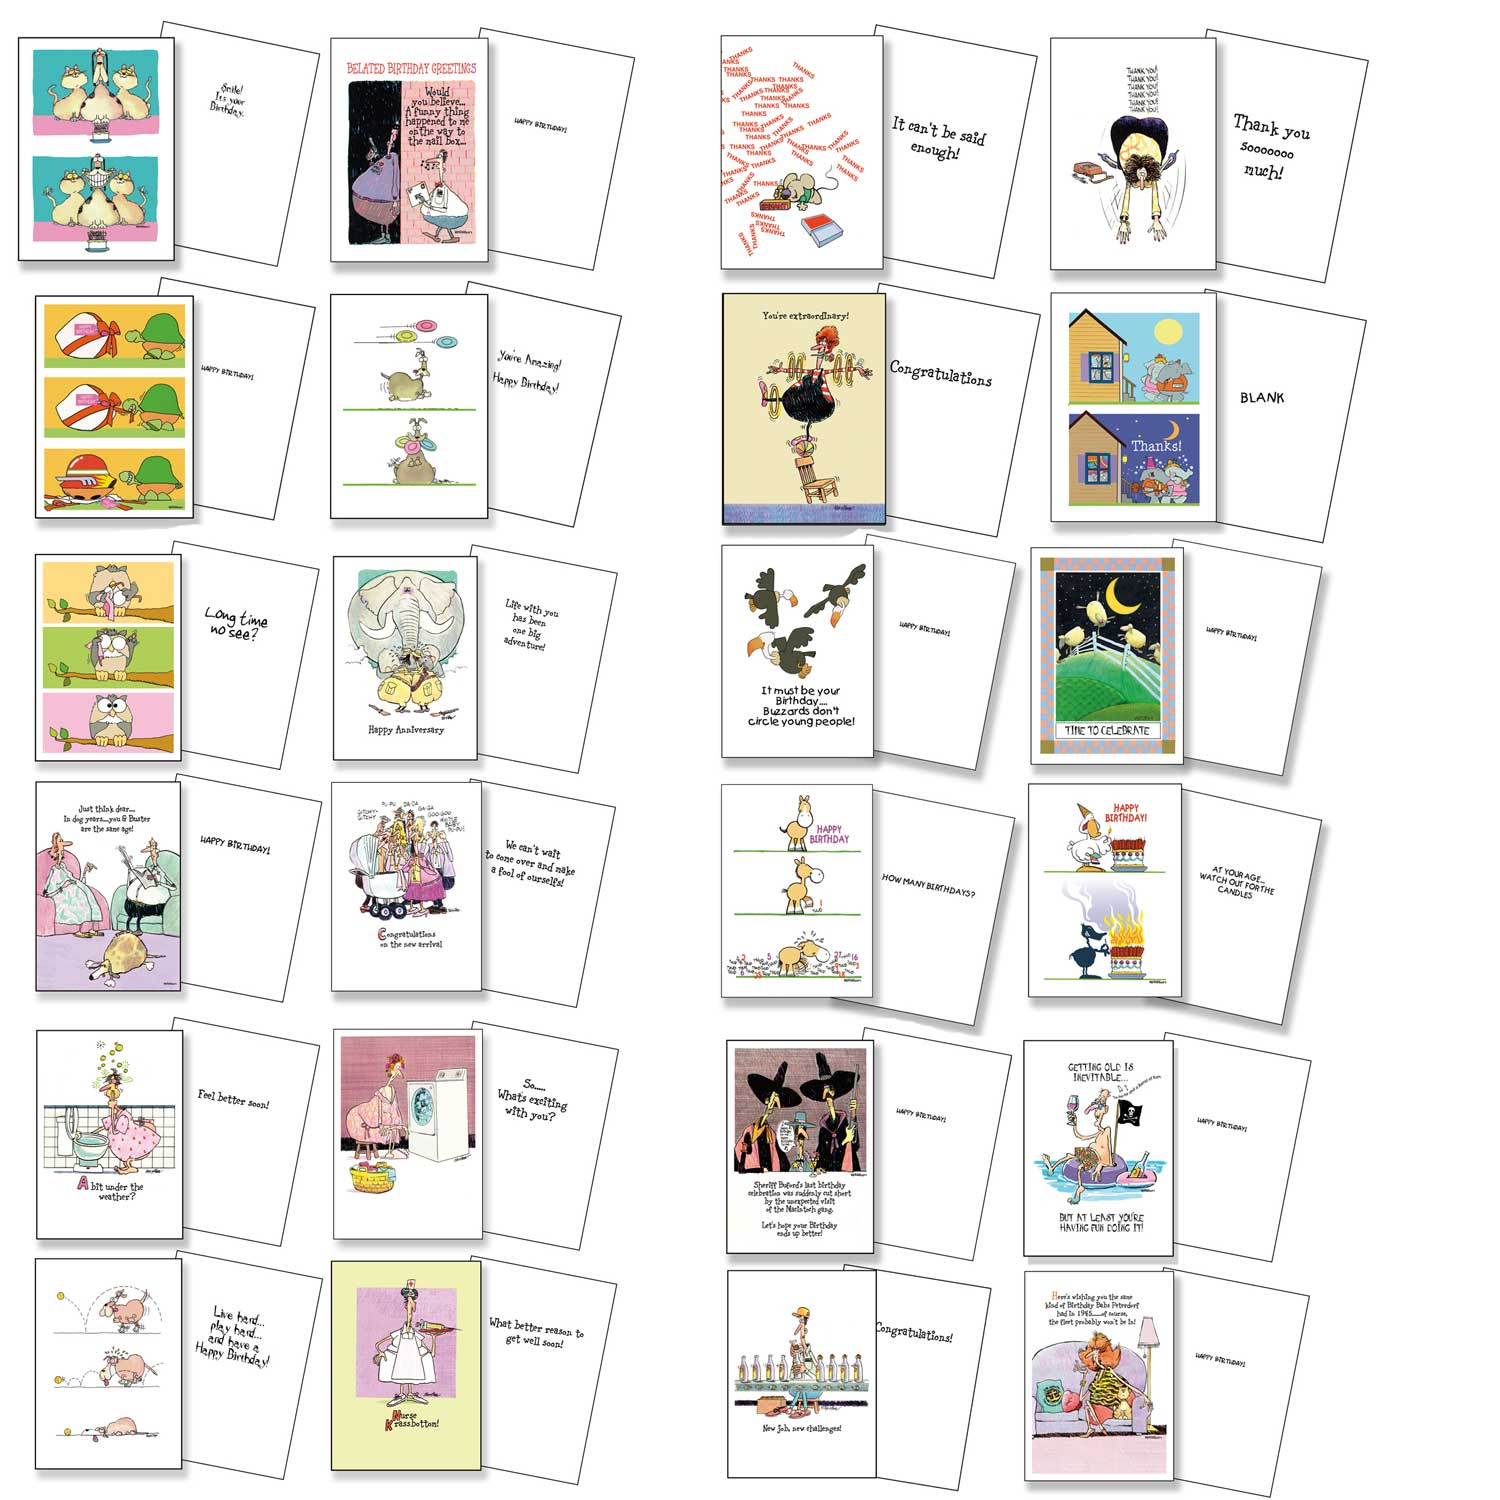 All Occasion Card Set - Birthday, Thank You, Friendship, Anniversary, Baby, Get Well - 24 Funny Assortment Card Pack - Bulk Assorted Cards